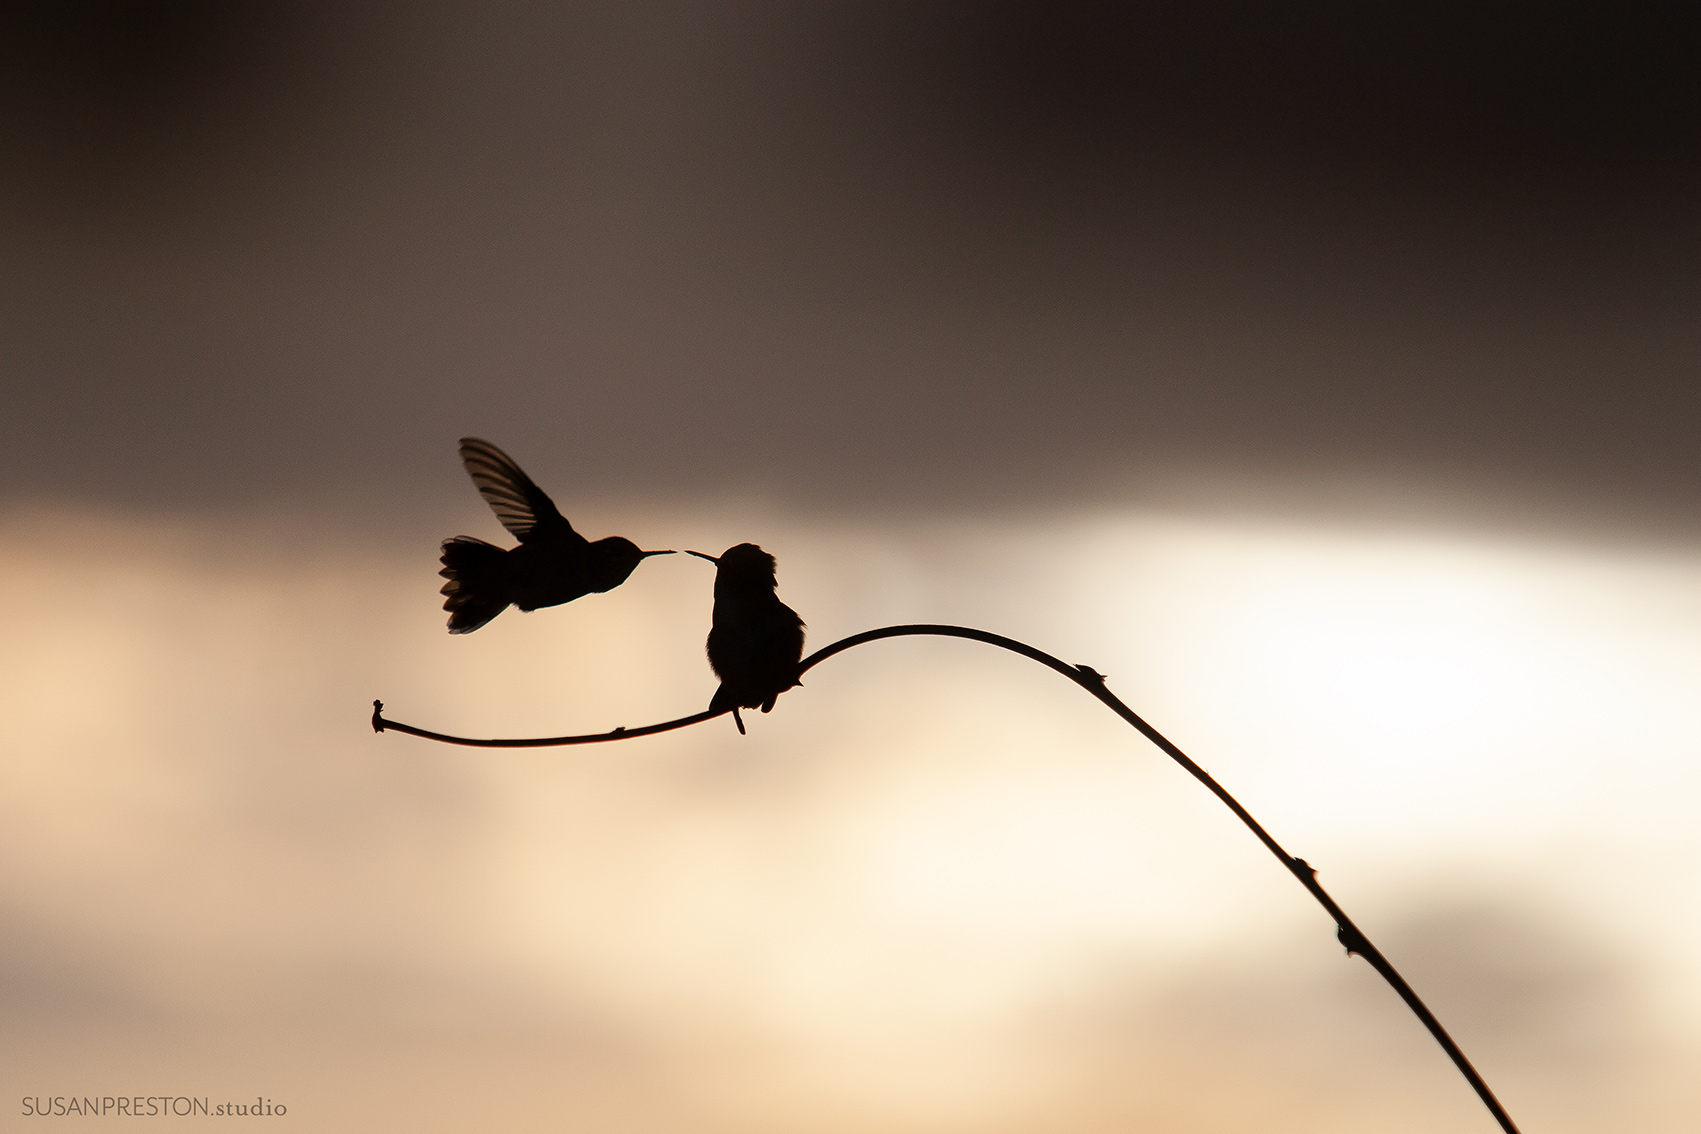 two silhouetted hummingbirds appear to kiss each other in the day's fading light